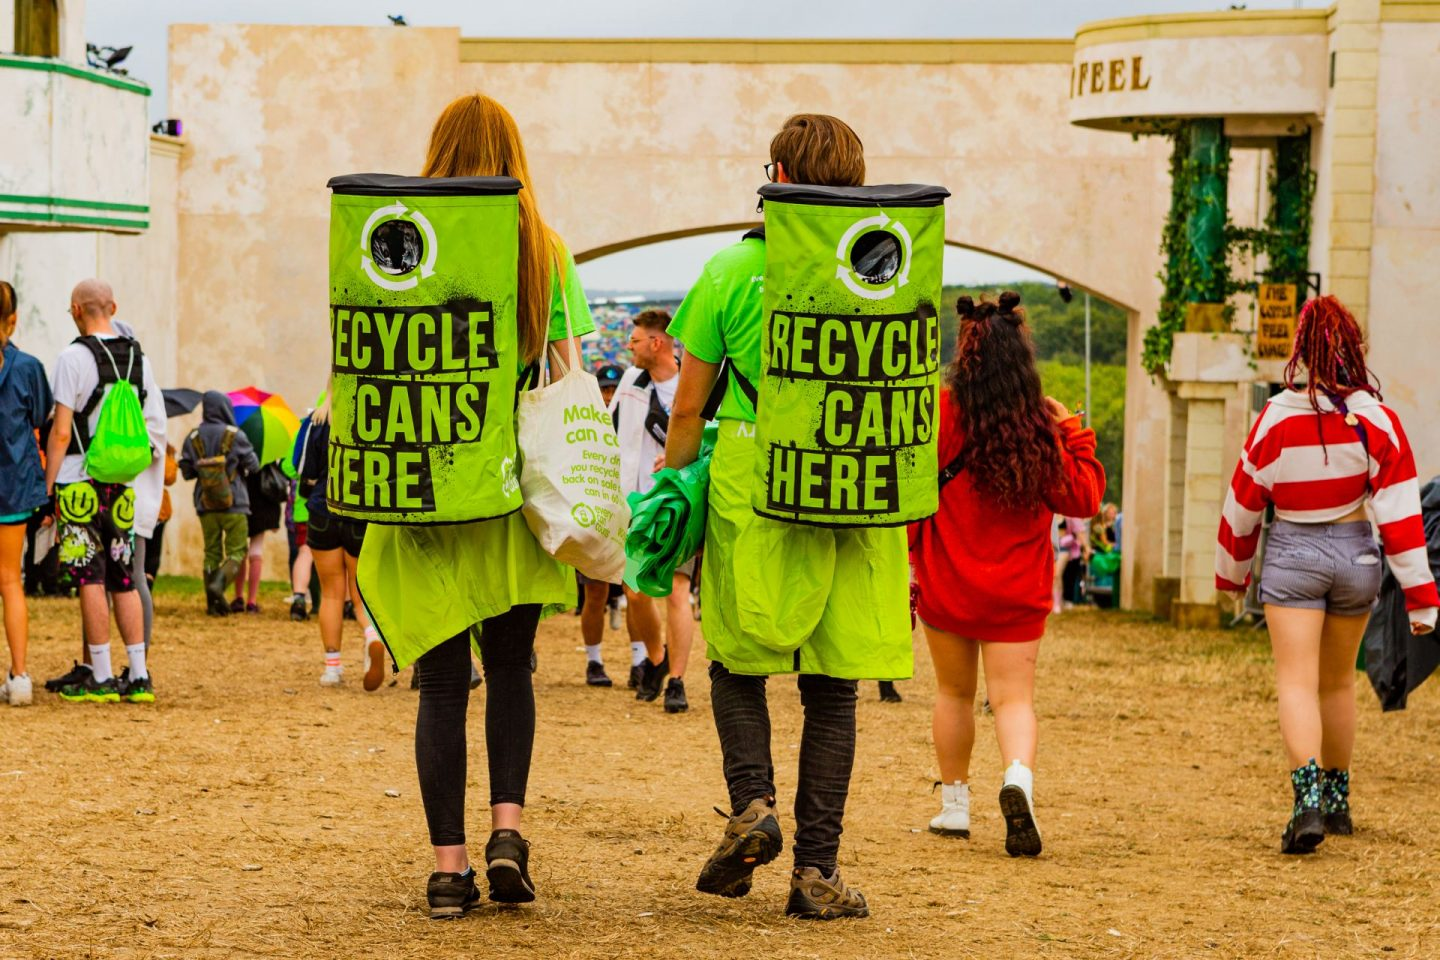 Every Can Counts, sustainability initiative at Boomtown Fair to encourage recycling